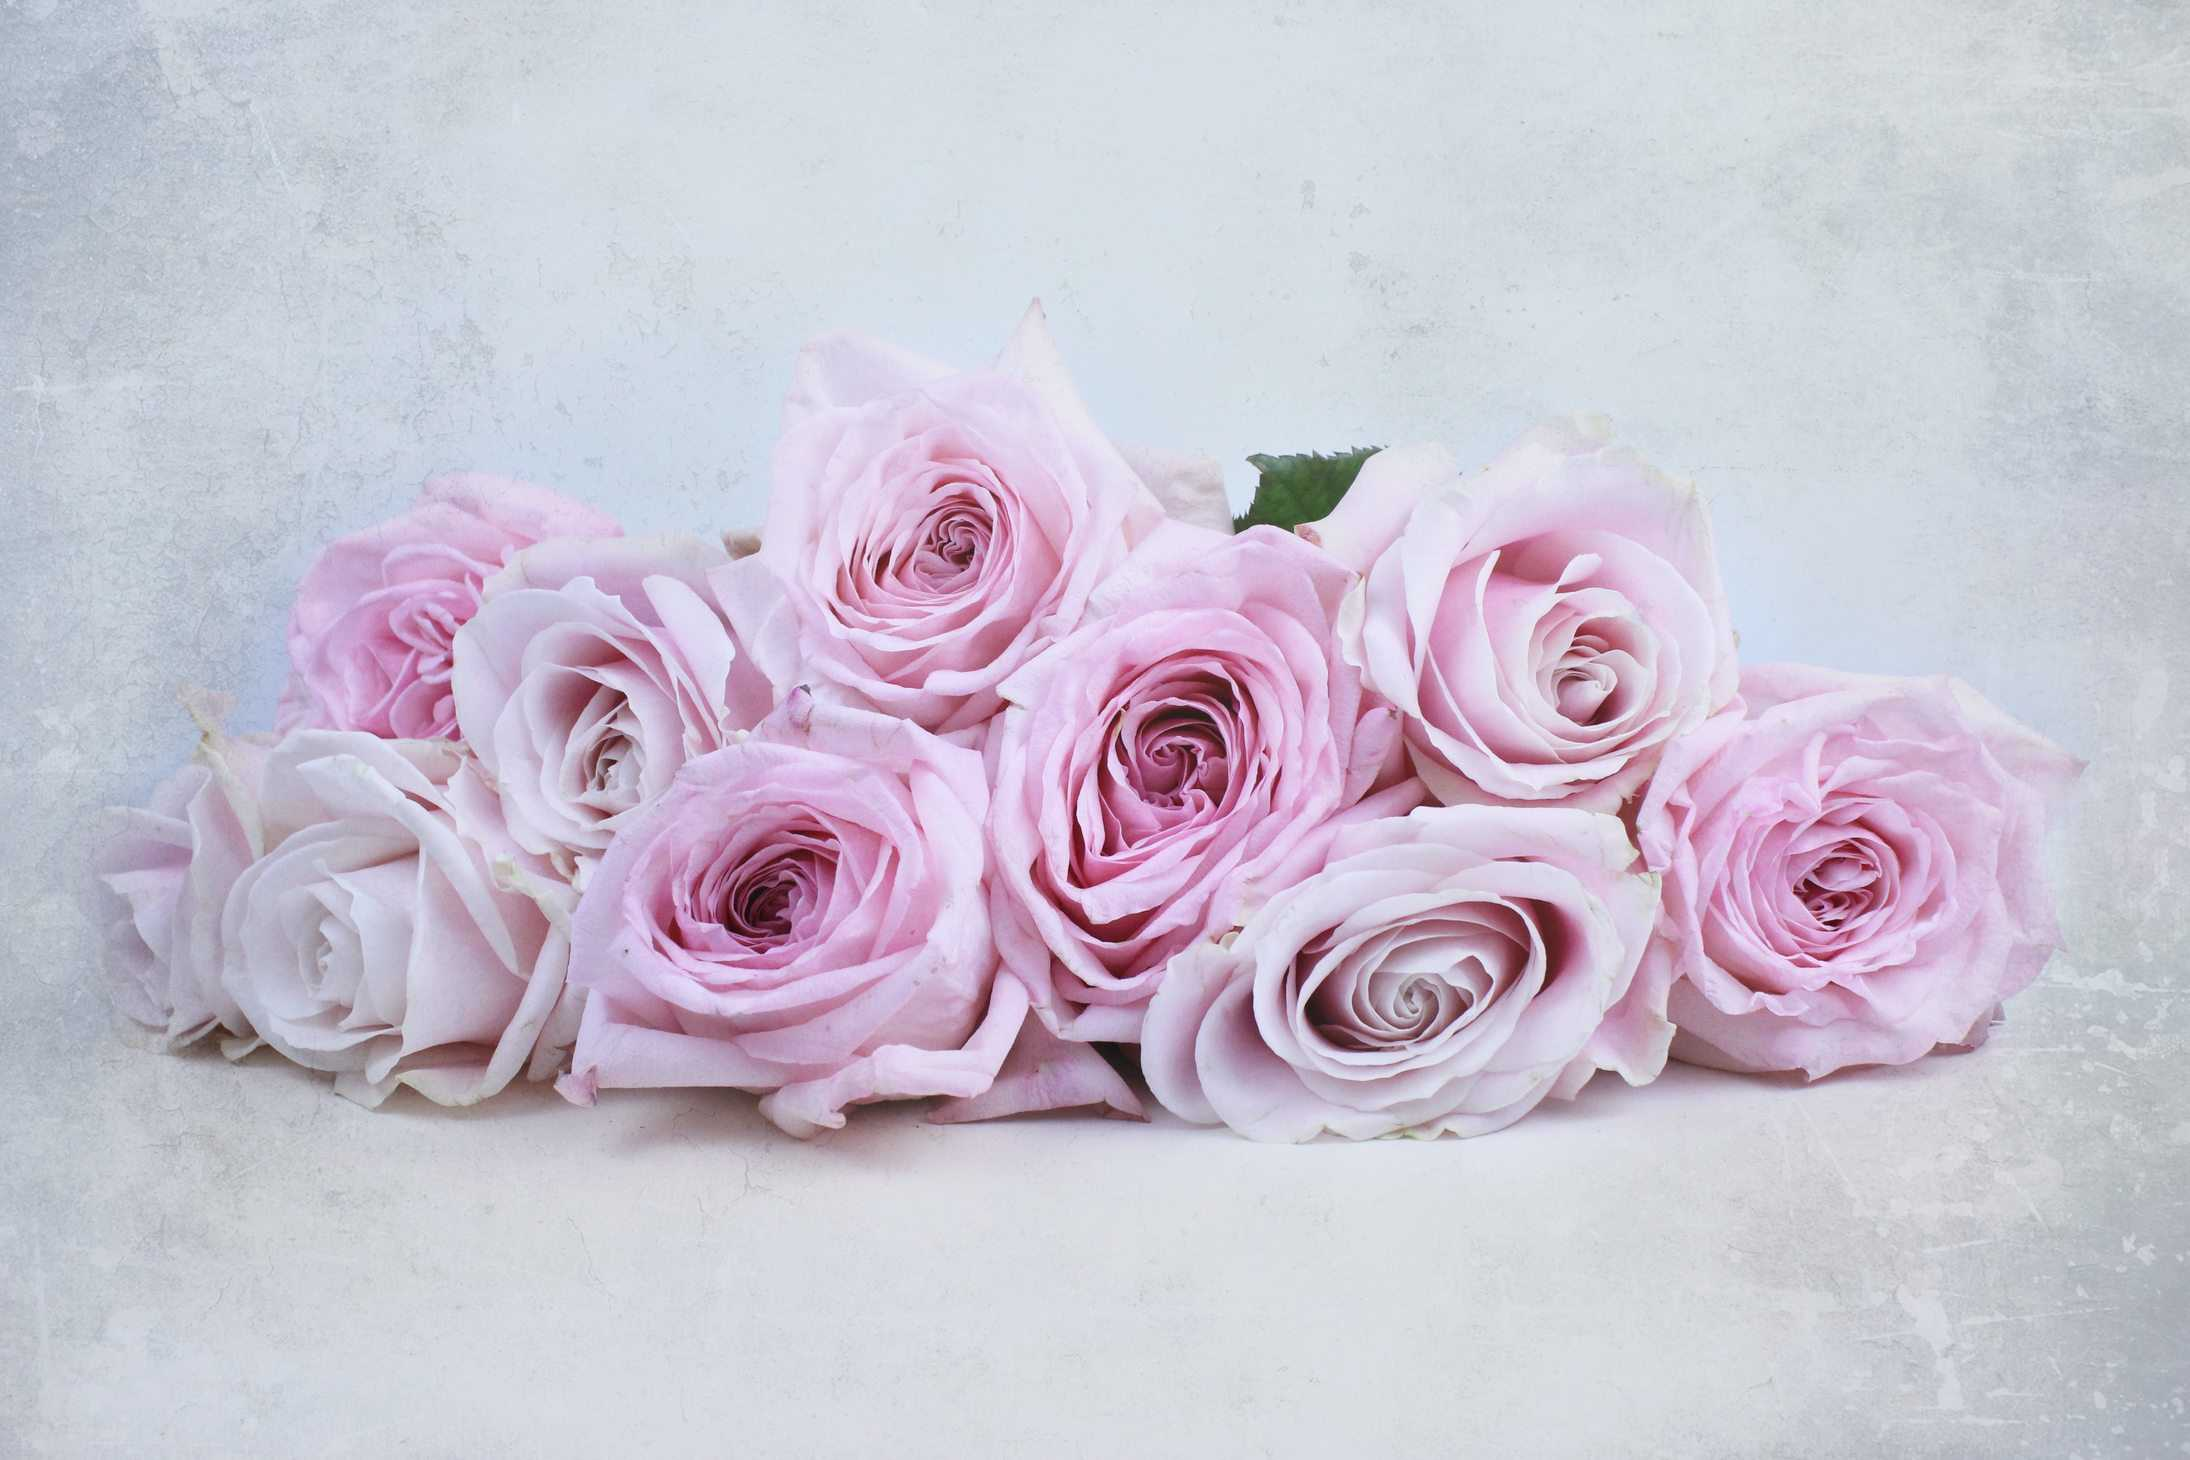 Perfect pink roses: O'hara and Avalanche